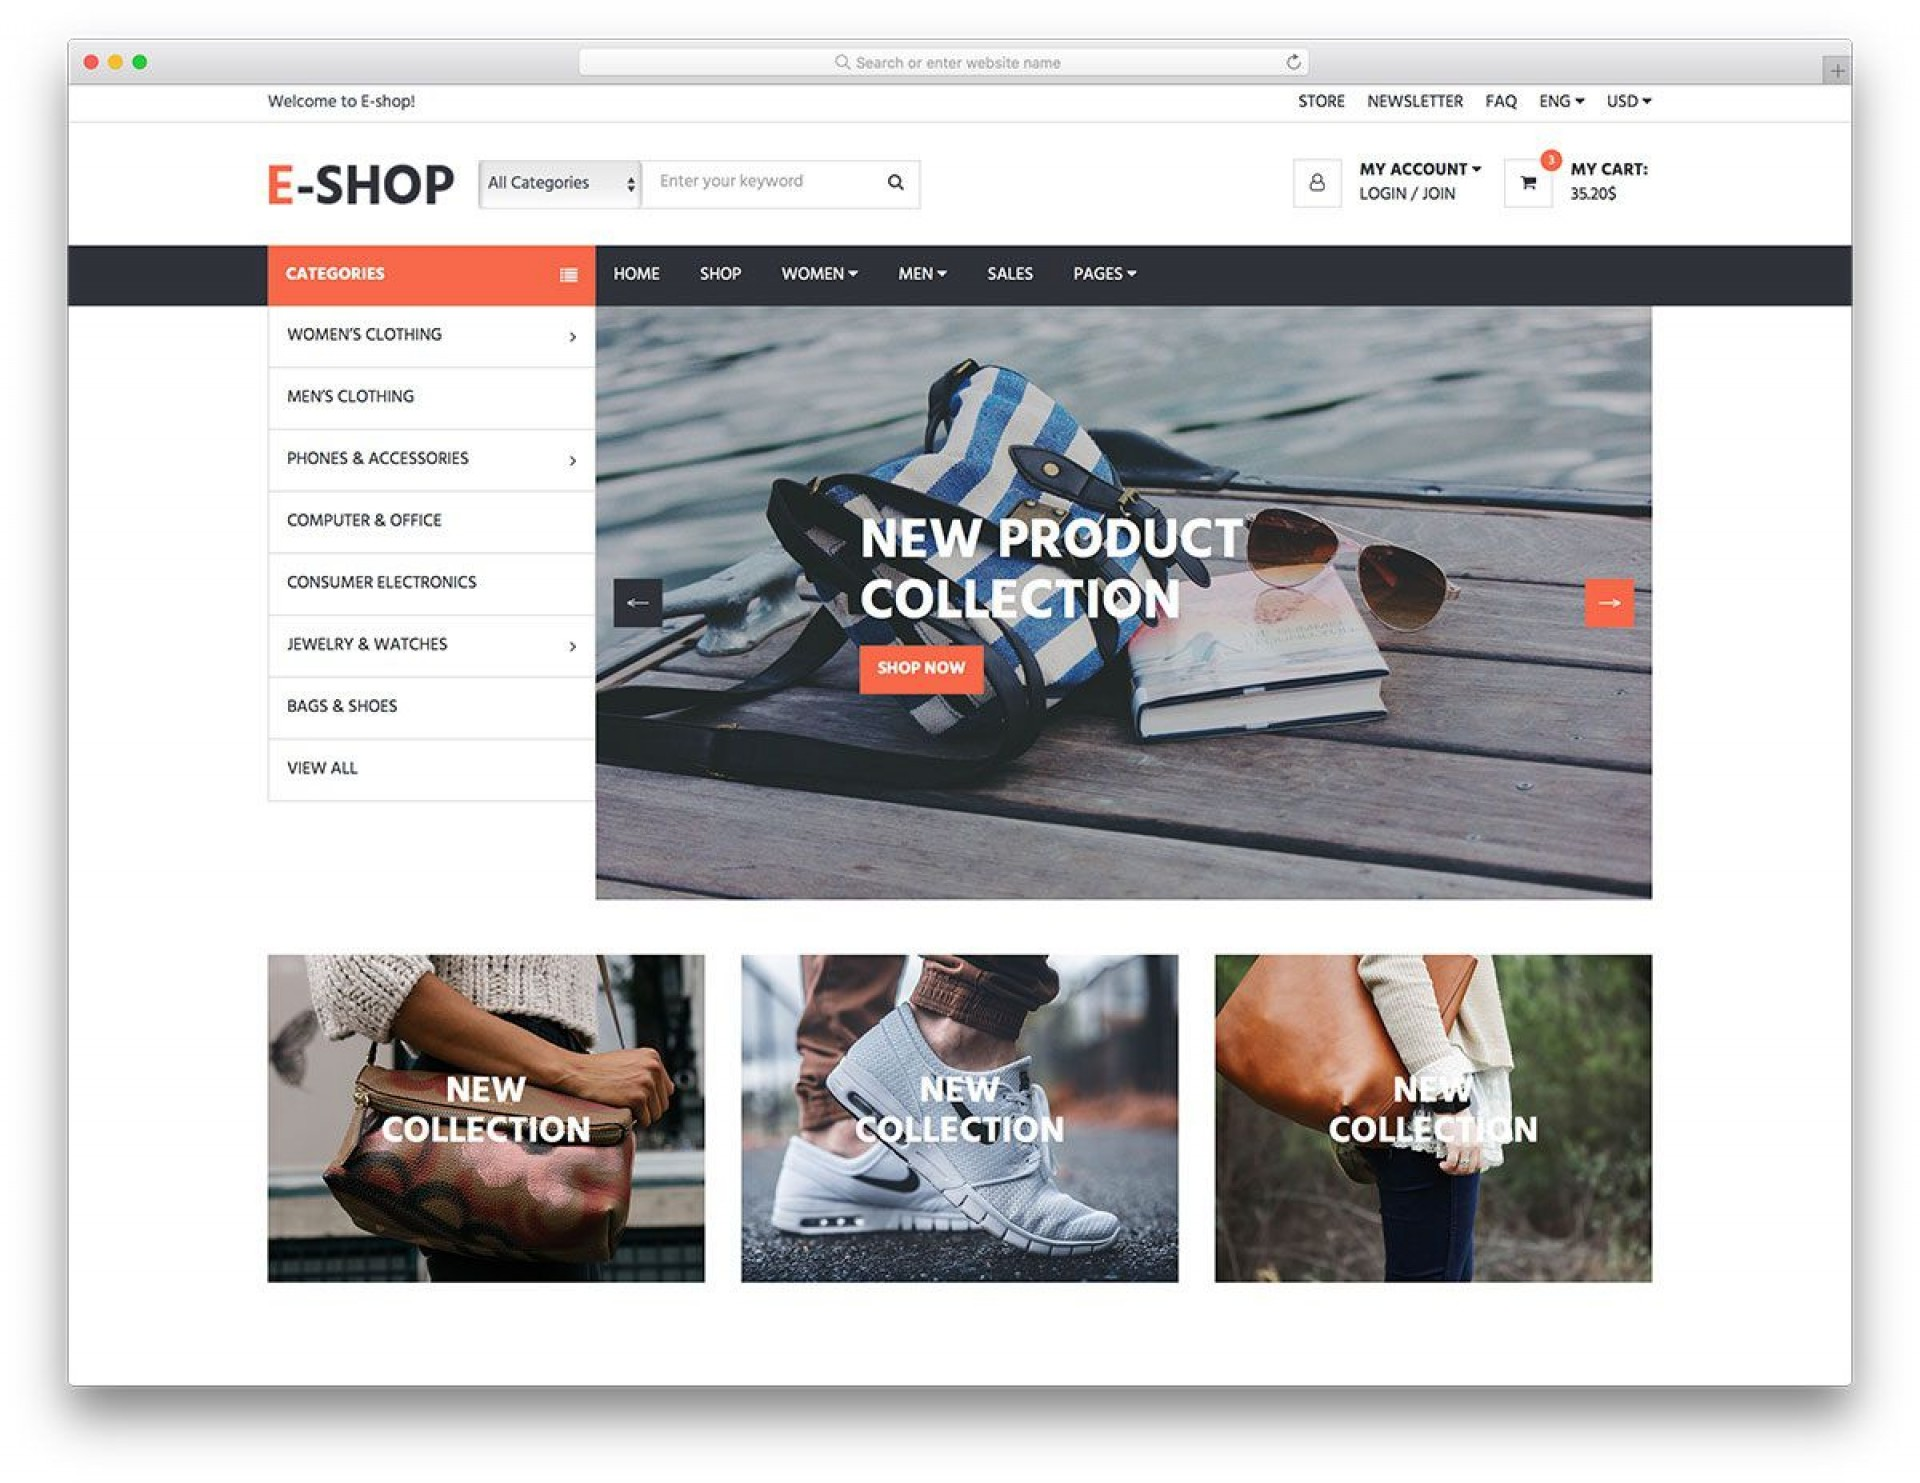 005 Stirring Free Html Template Download For Online Shopping Website Highest Clarity  Websites1920